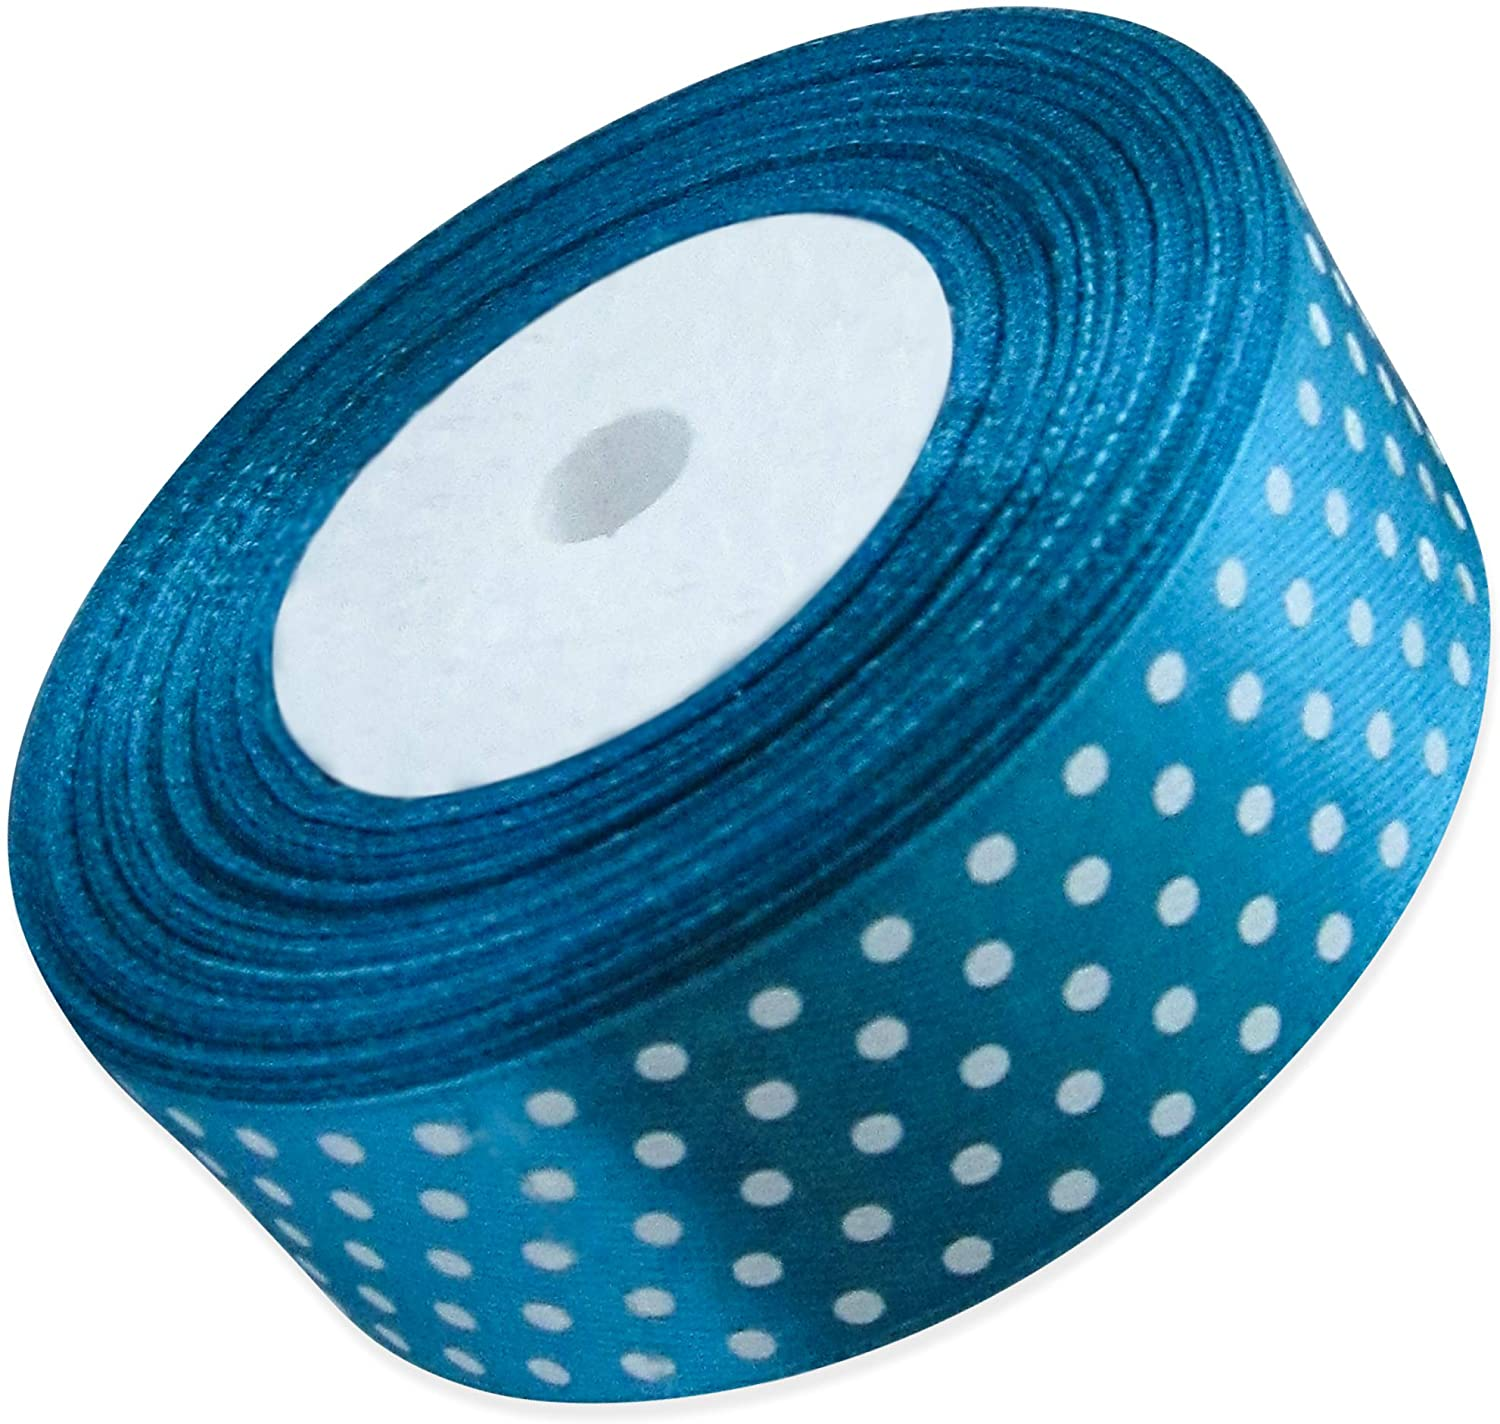 Ribbon 1 inch Azure with White Polka Dots Ribbons for Crafts Gift Ribbon Satin Solid Ribbon Roll 1 in x 25 Yards